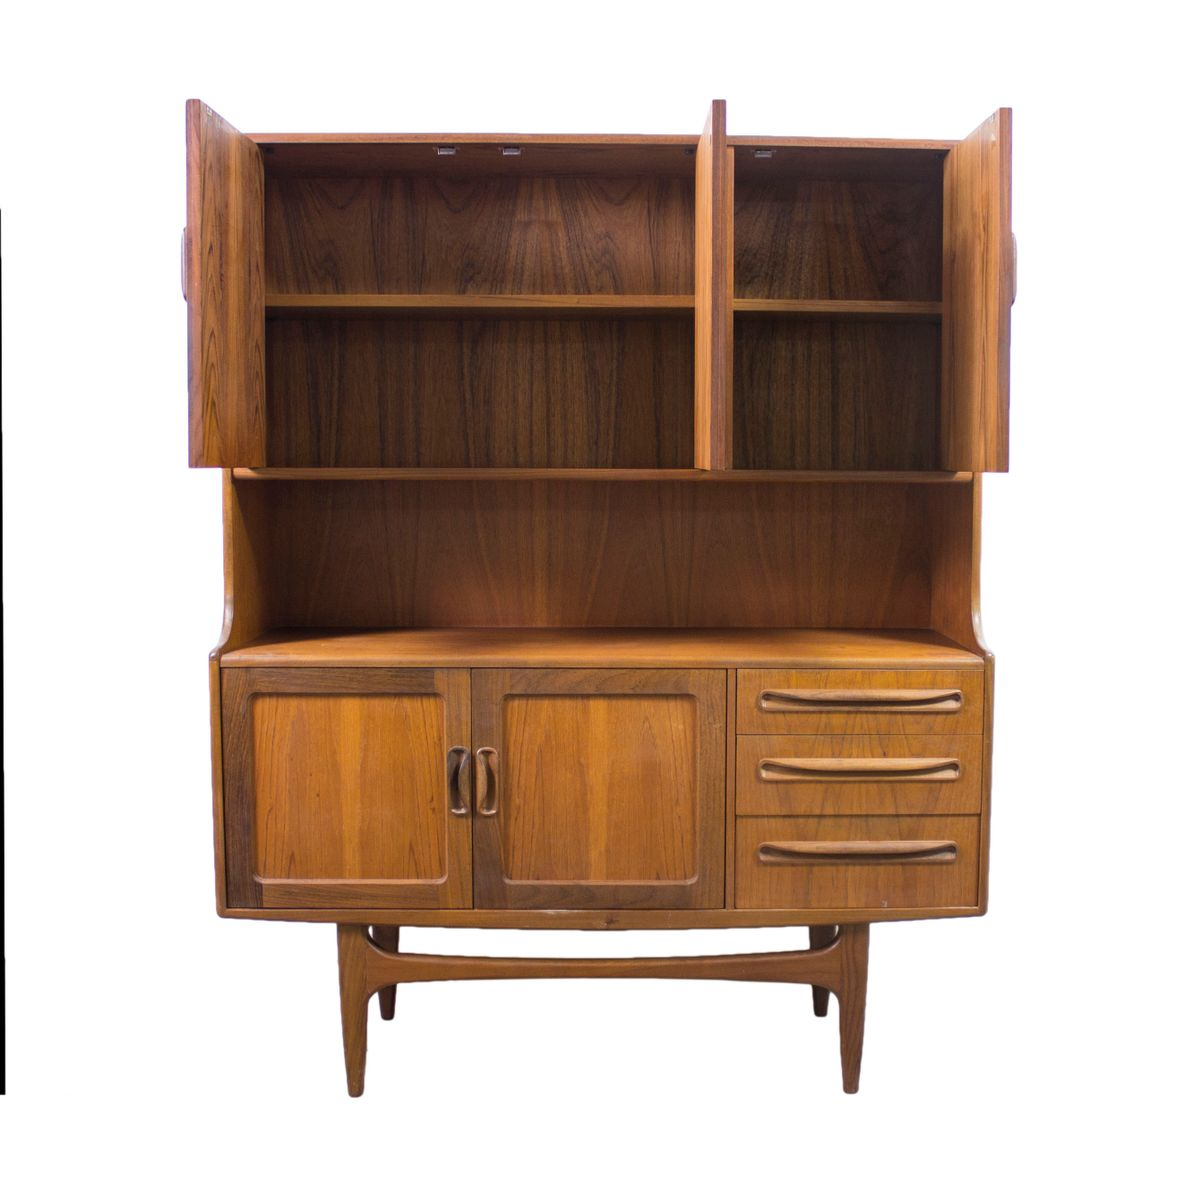 vintage teak und rattan highboard von victor wilkins f r g plan bei pamono kaufen. Black Bedroom Furniture Sets. Home Design Ideas